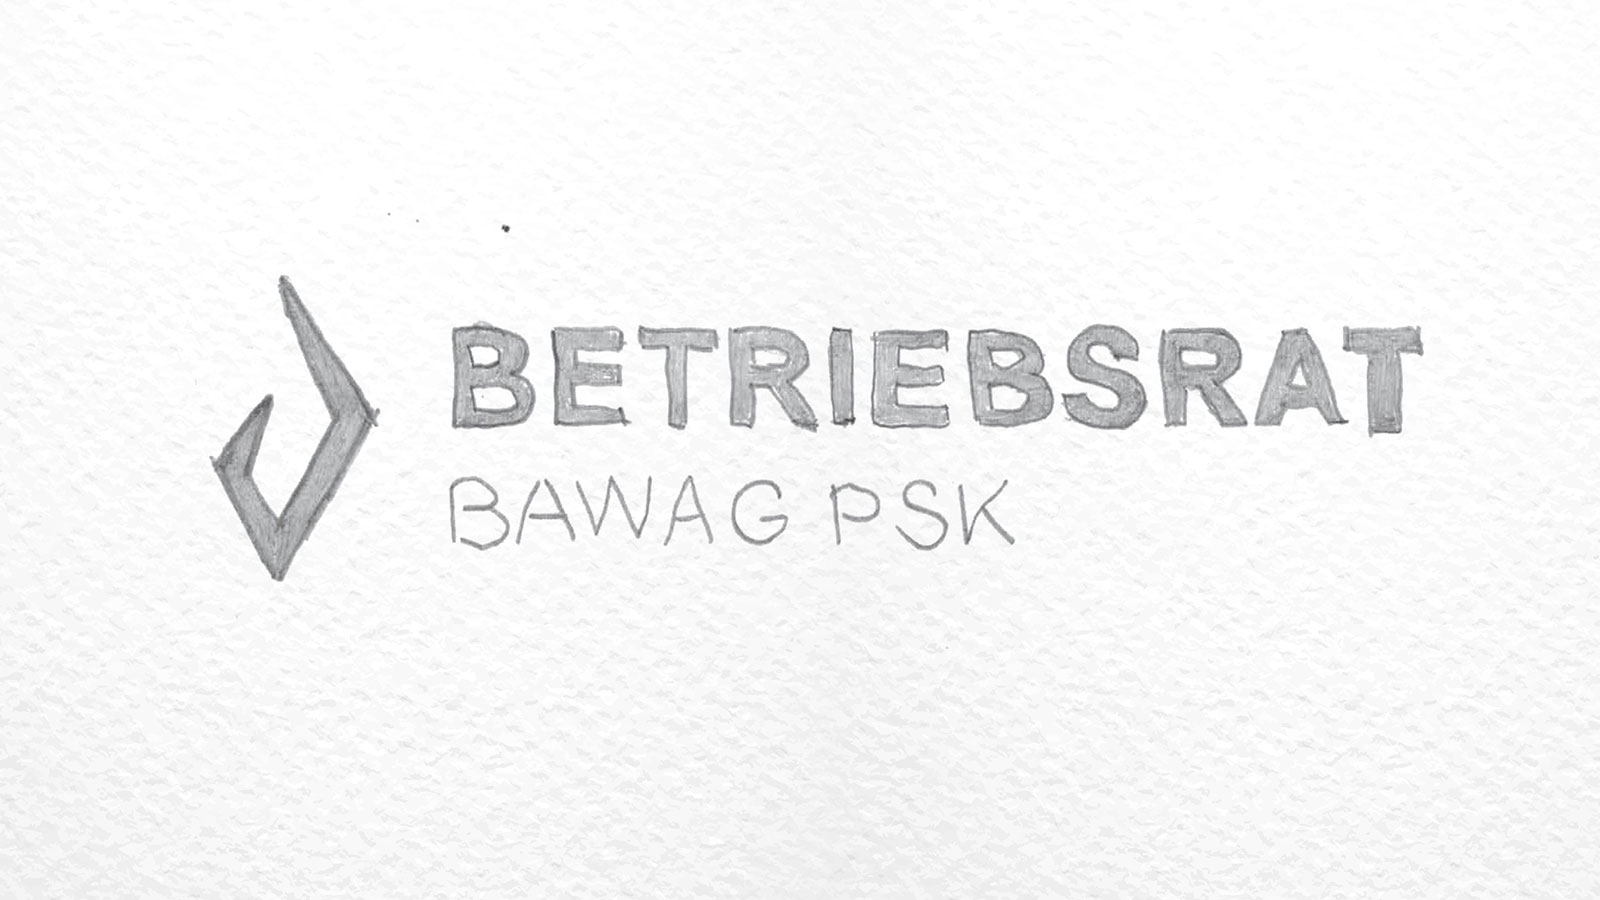 BAWAG PSK Betriebsrat | bawagpsk-betriebsrat.at | 2017 (Logo Scrbible 02) © echonet communication